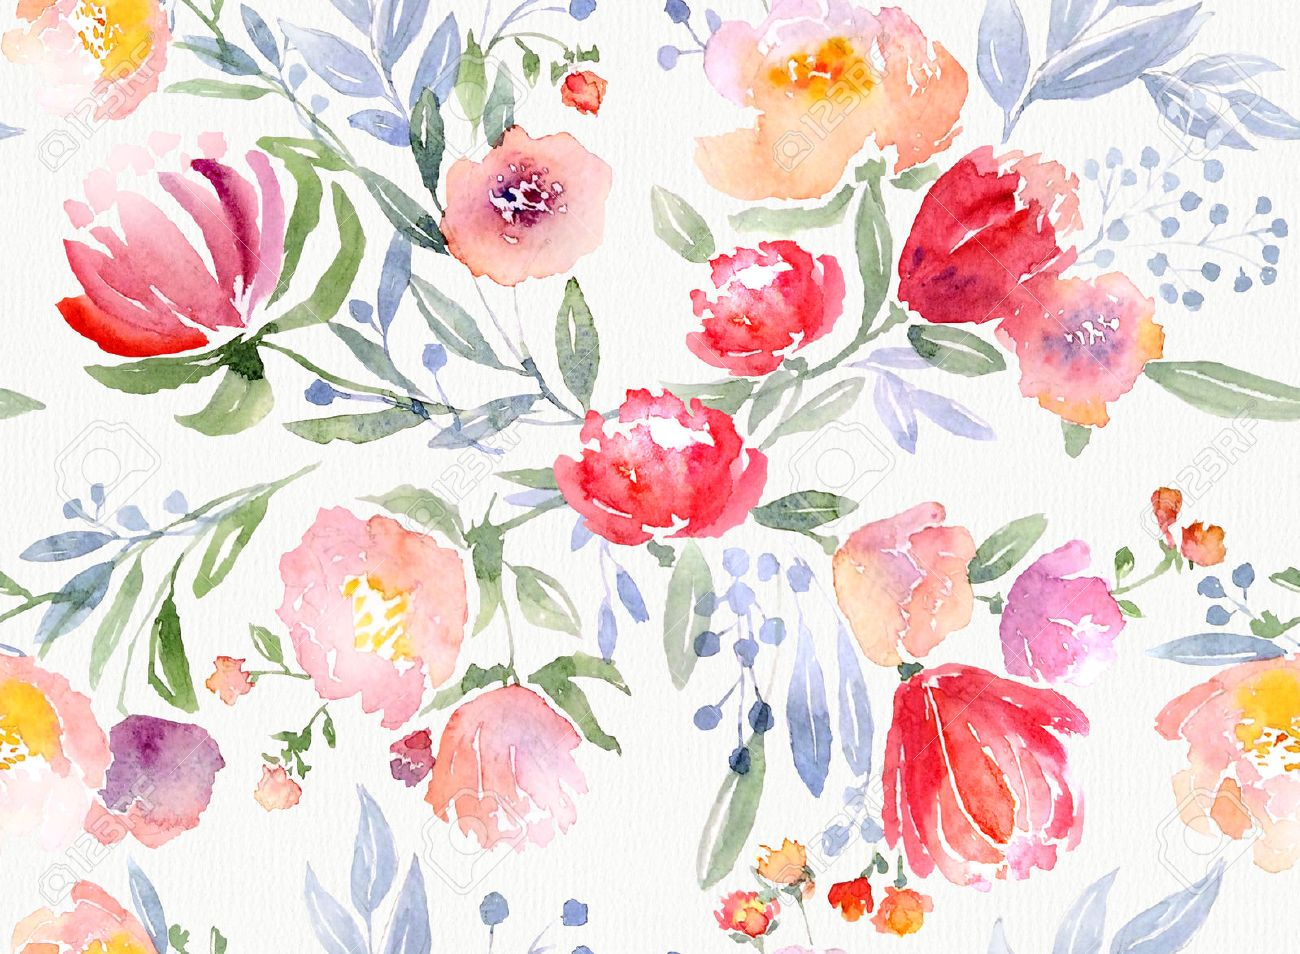 Illustration Watercolor Floral Botanical Pattern And Seamless Background Ideal For Printing Onto Fabric And Paper Or Scrap Booking Hand Painted